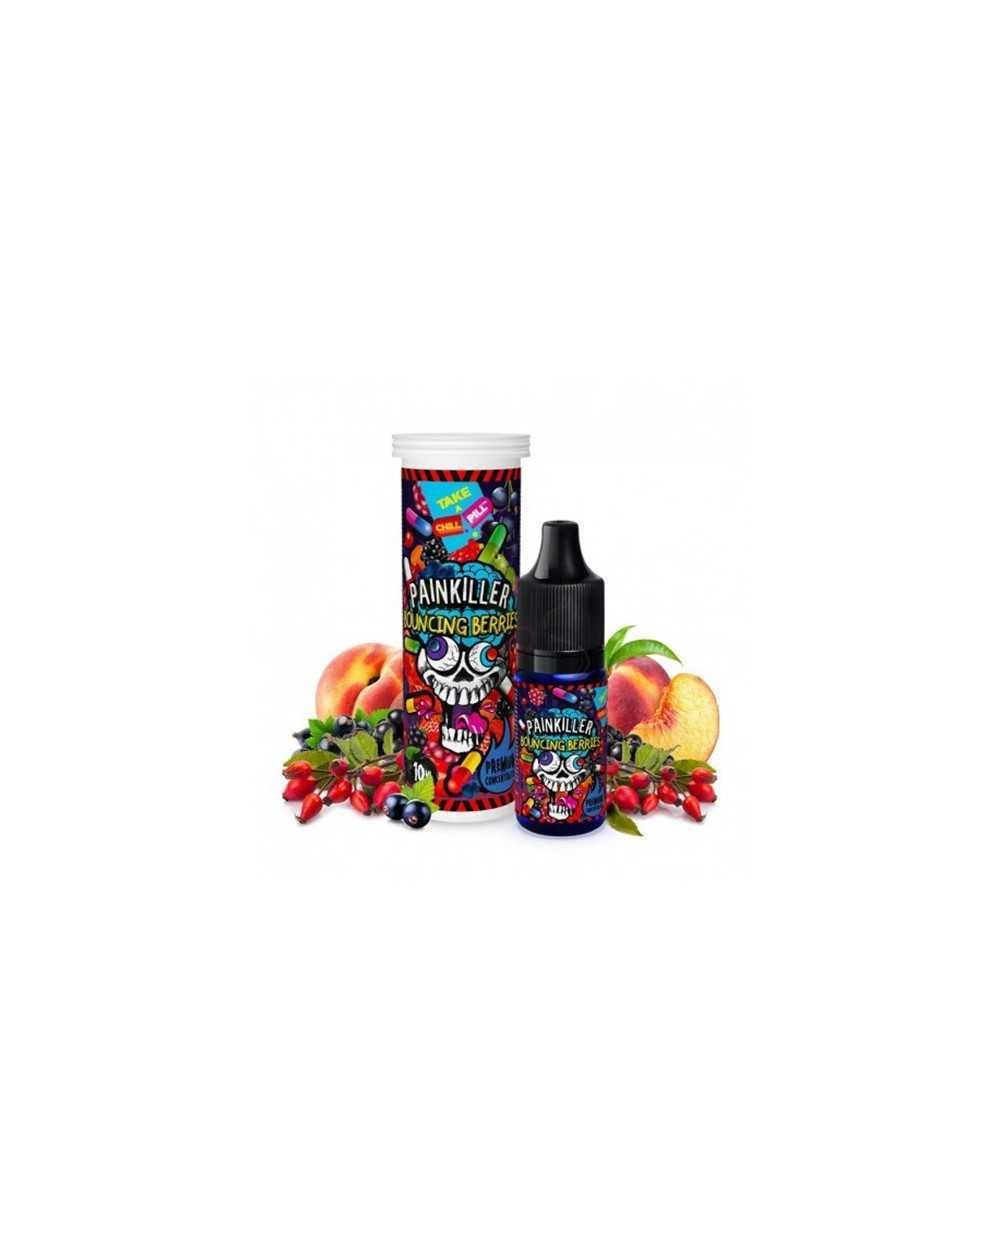 Concentrate Pain Killer Bouncing Berries 10ml - Chill Pill-1